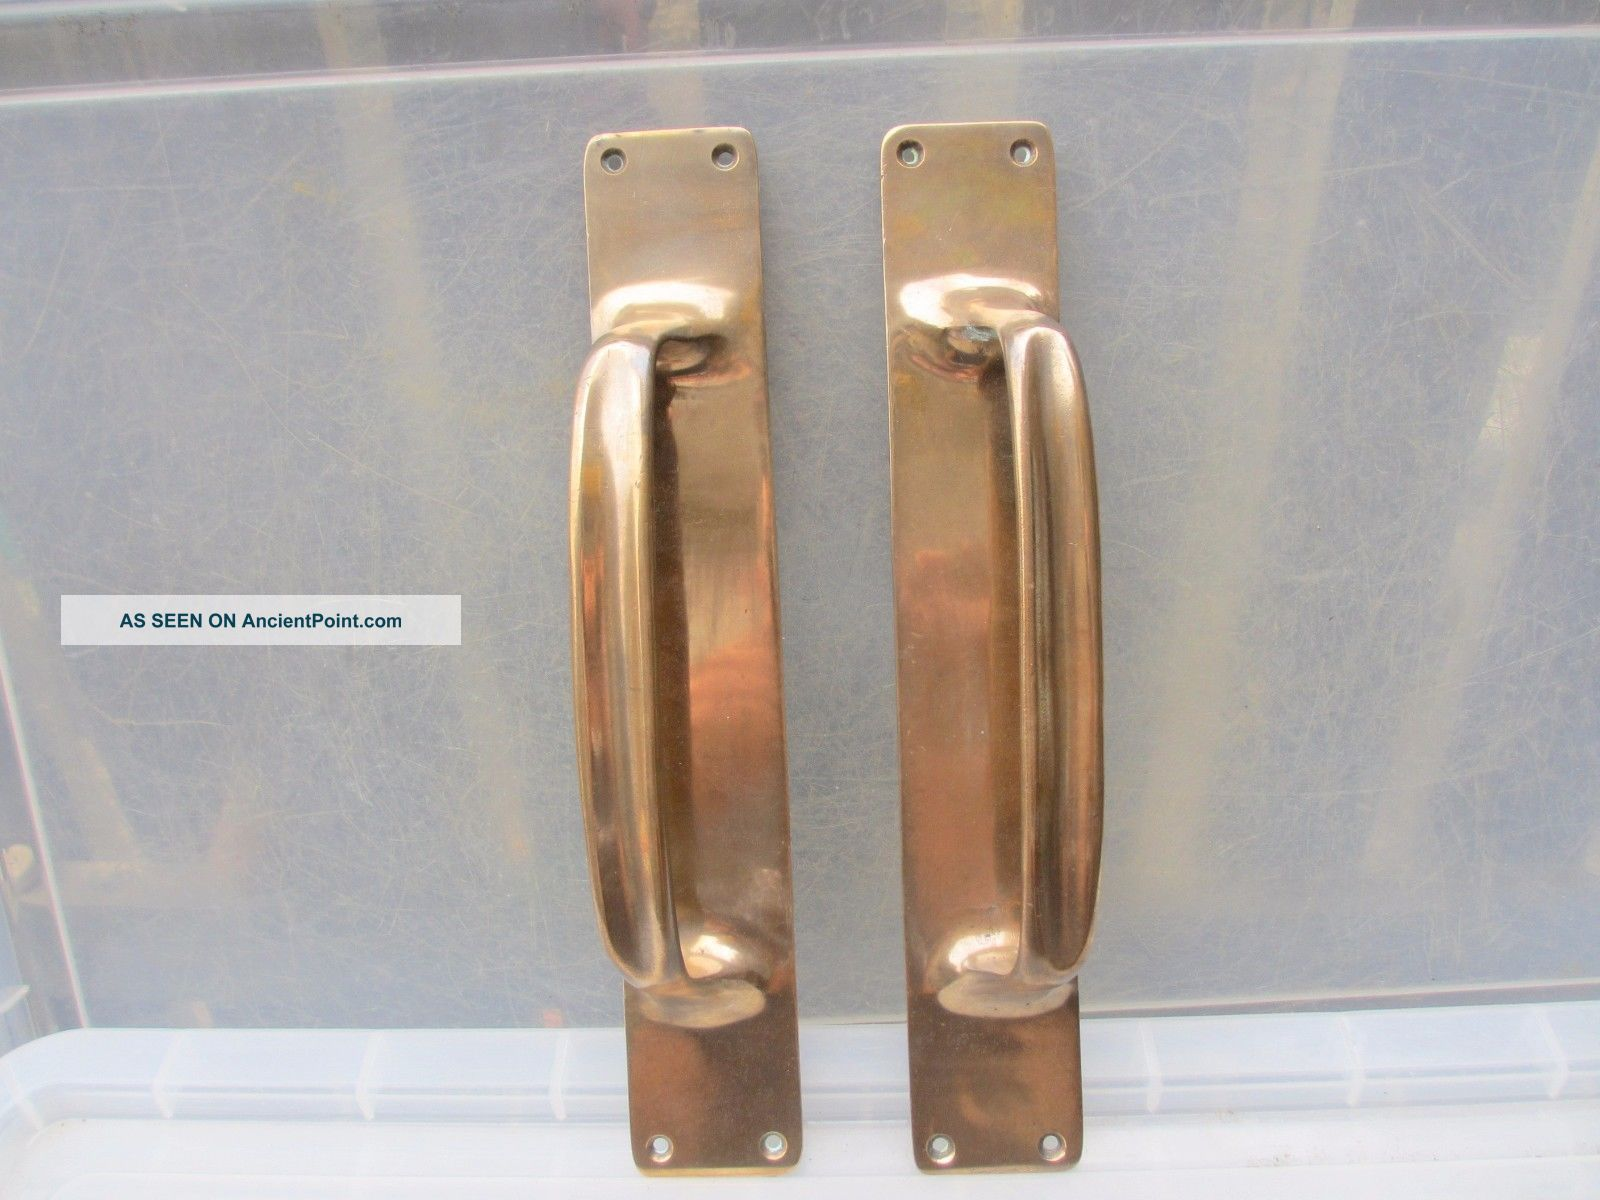 Antique Bronze Door Handles Shop Pulls Vintage Pub Old Victorian - Edwardian 13